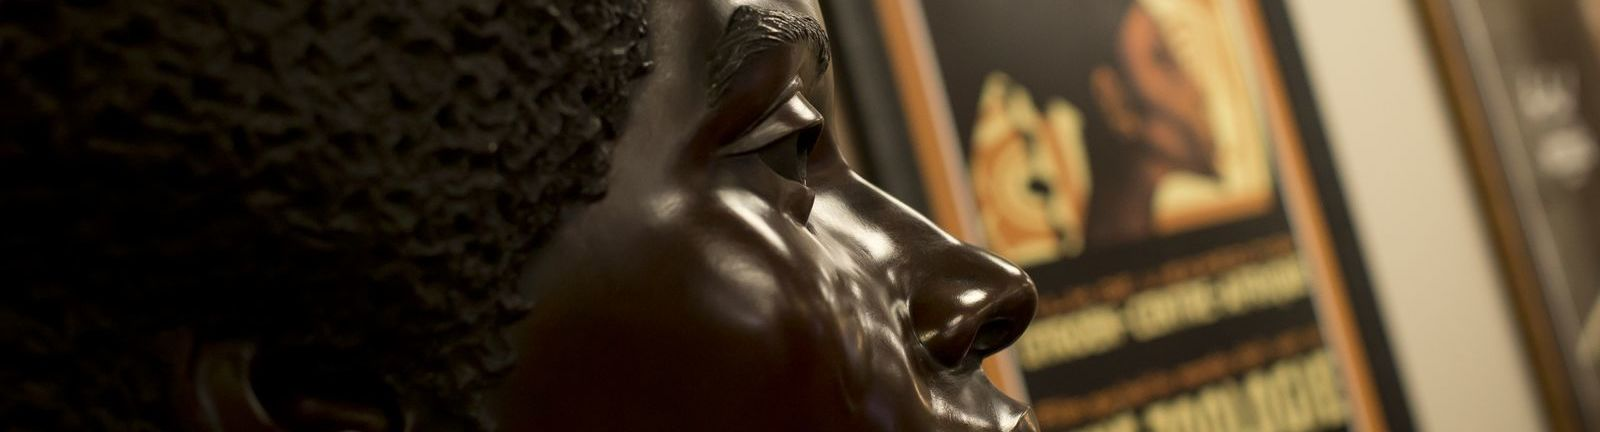 Statue of an African American man in the Charles L. Blockson Collection at Temple University.